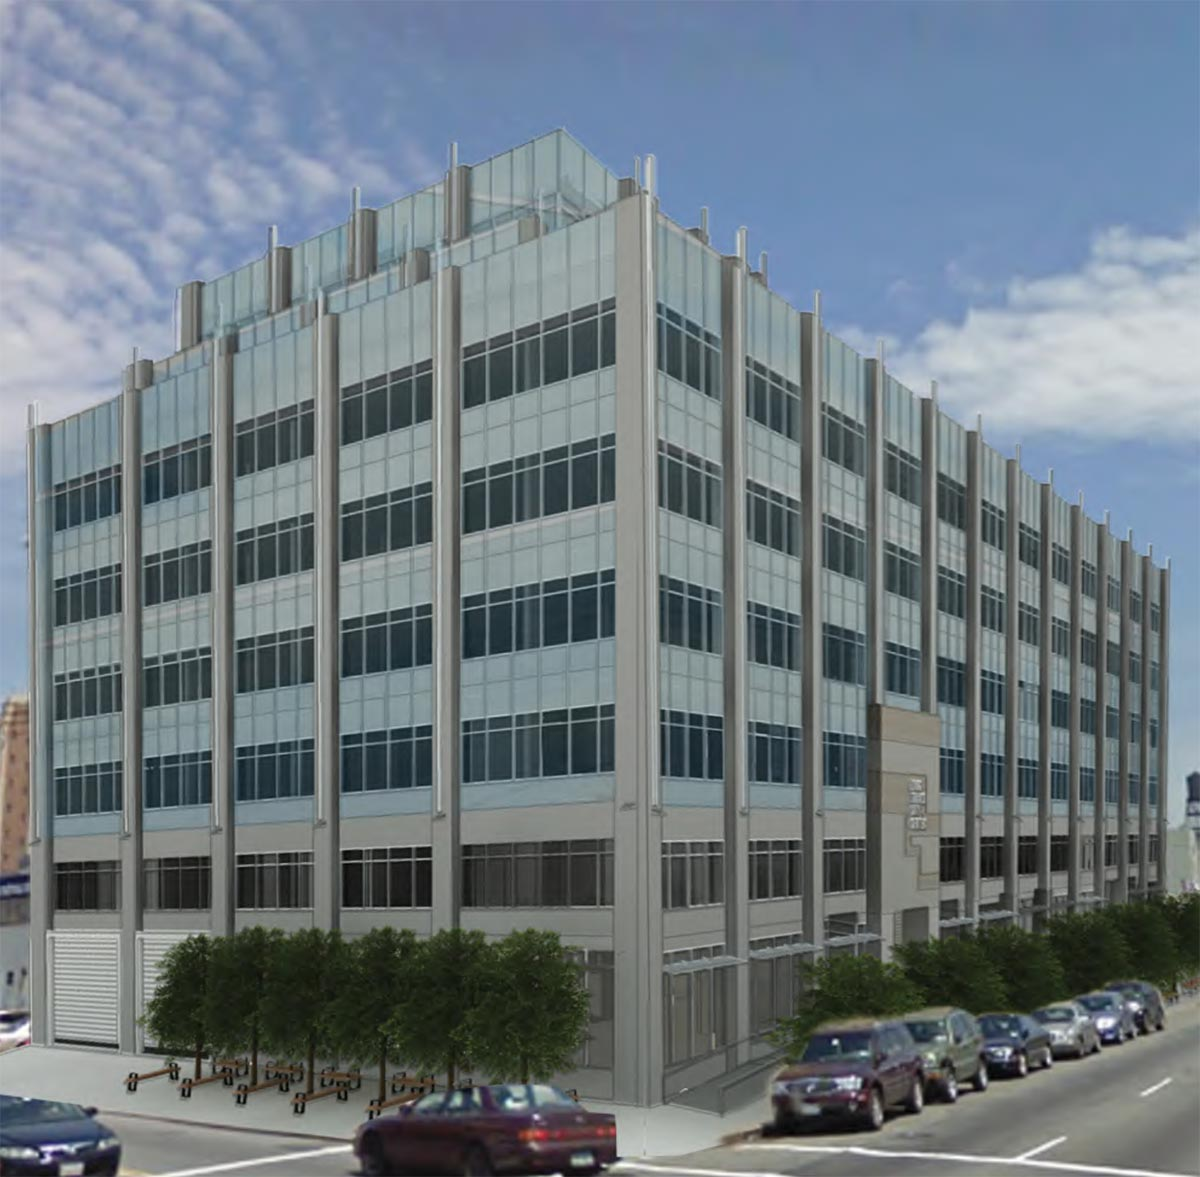 renderings-reveal-the-headquarters-of-the-new-teamsters-union-at-48-18-van-dam-street-in-long-island-city-queens